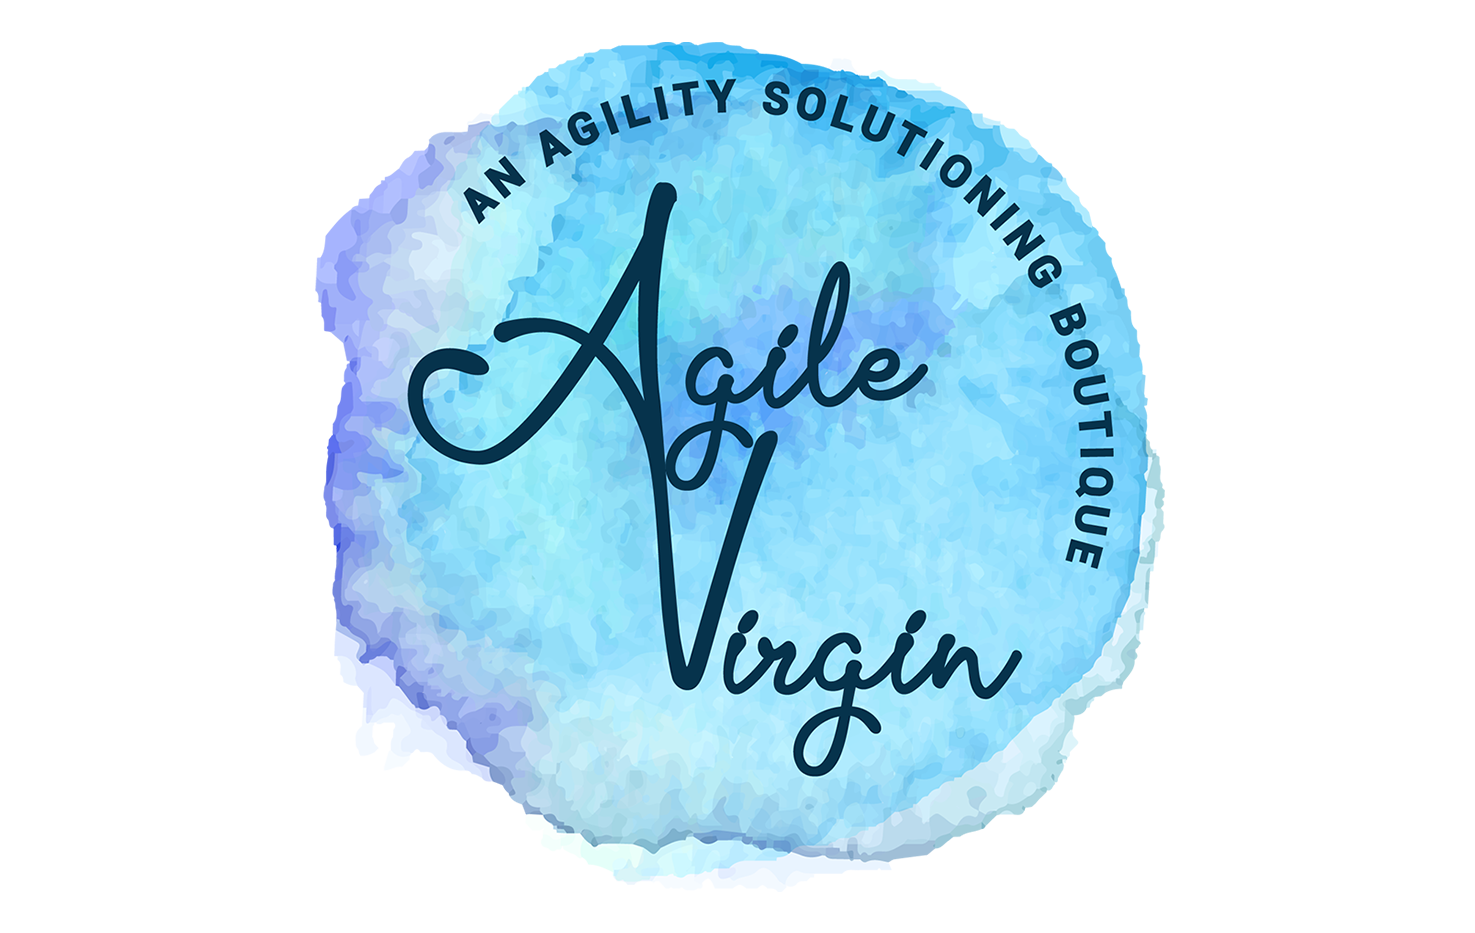 Agile Virgin